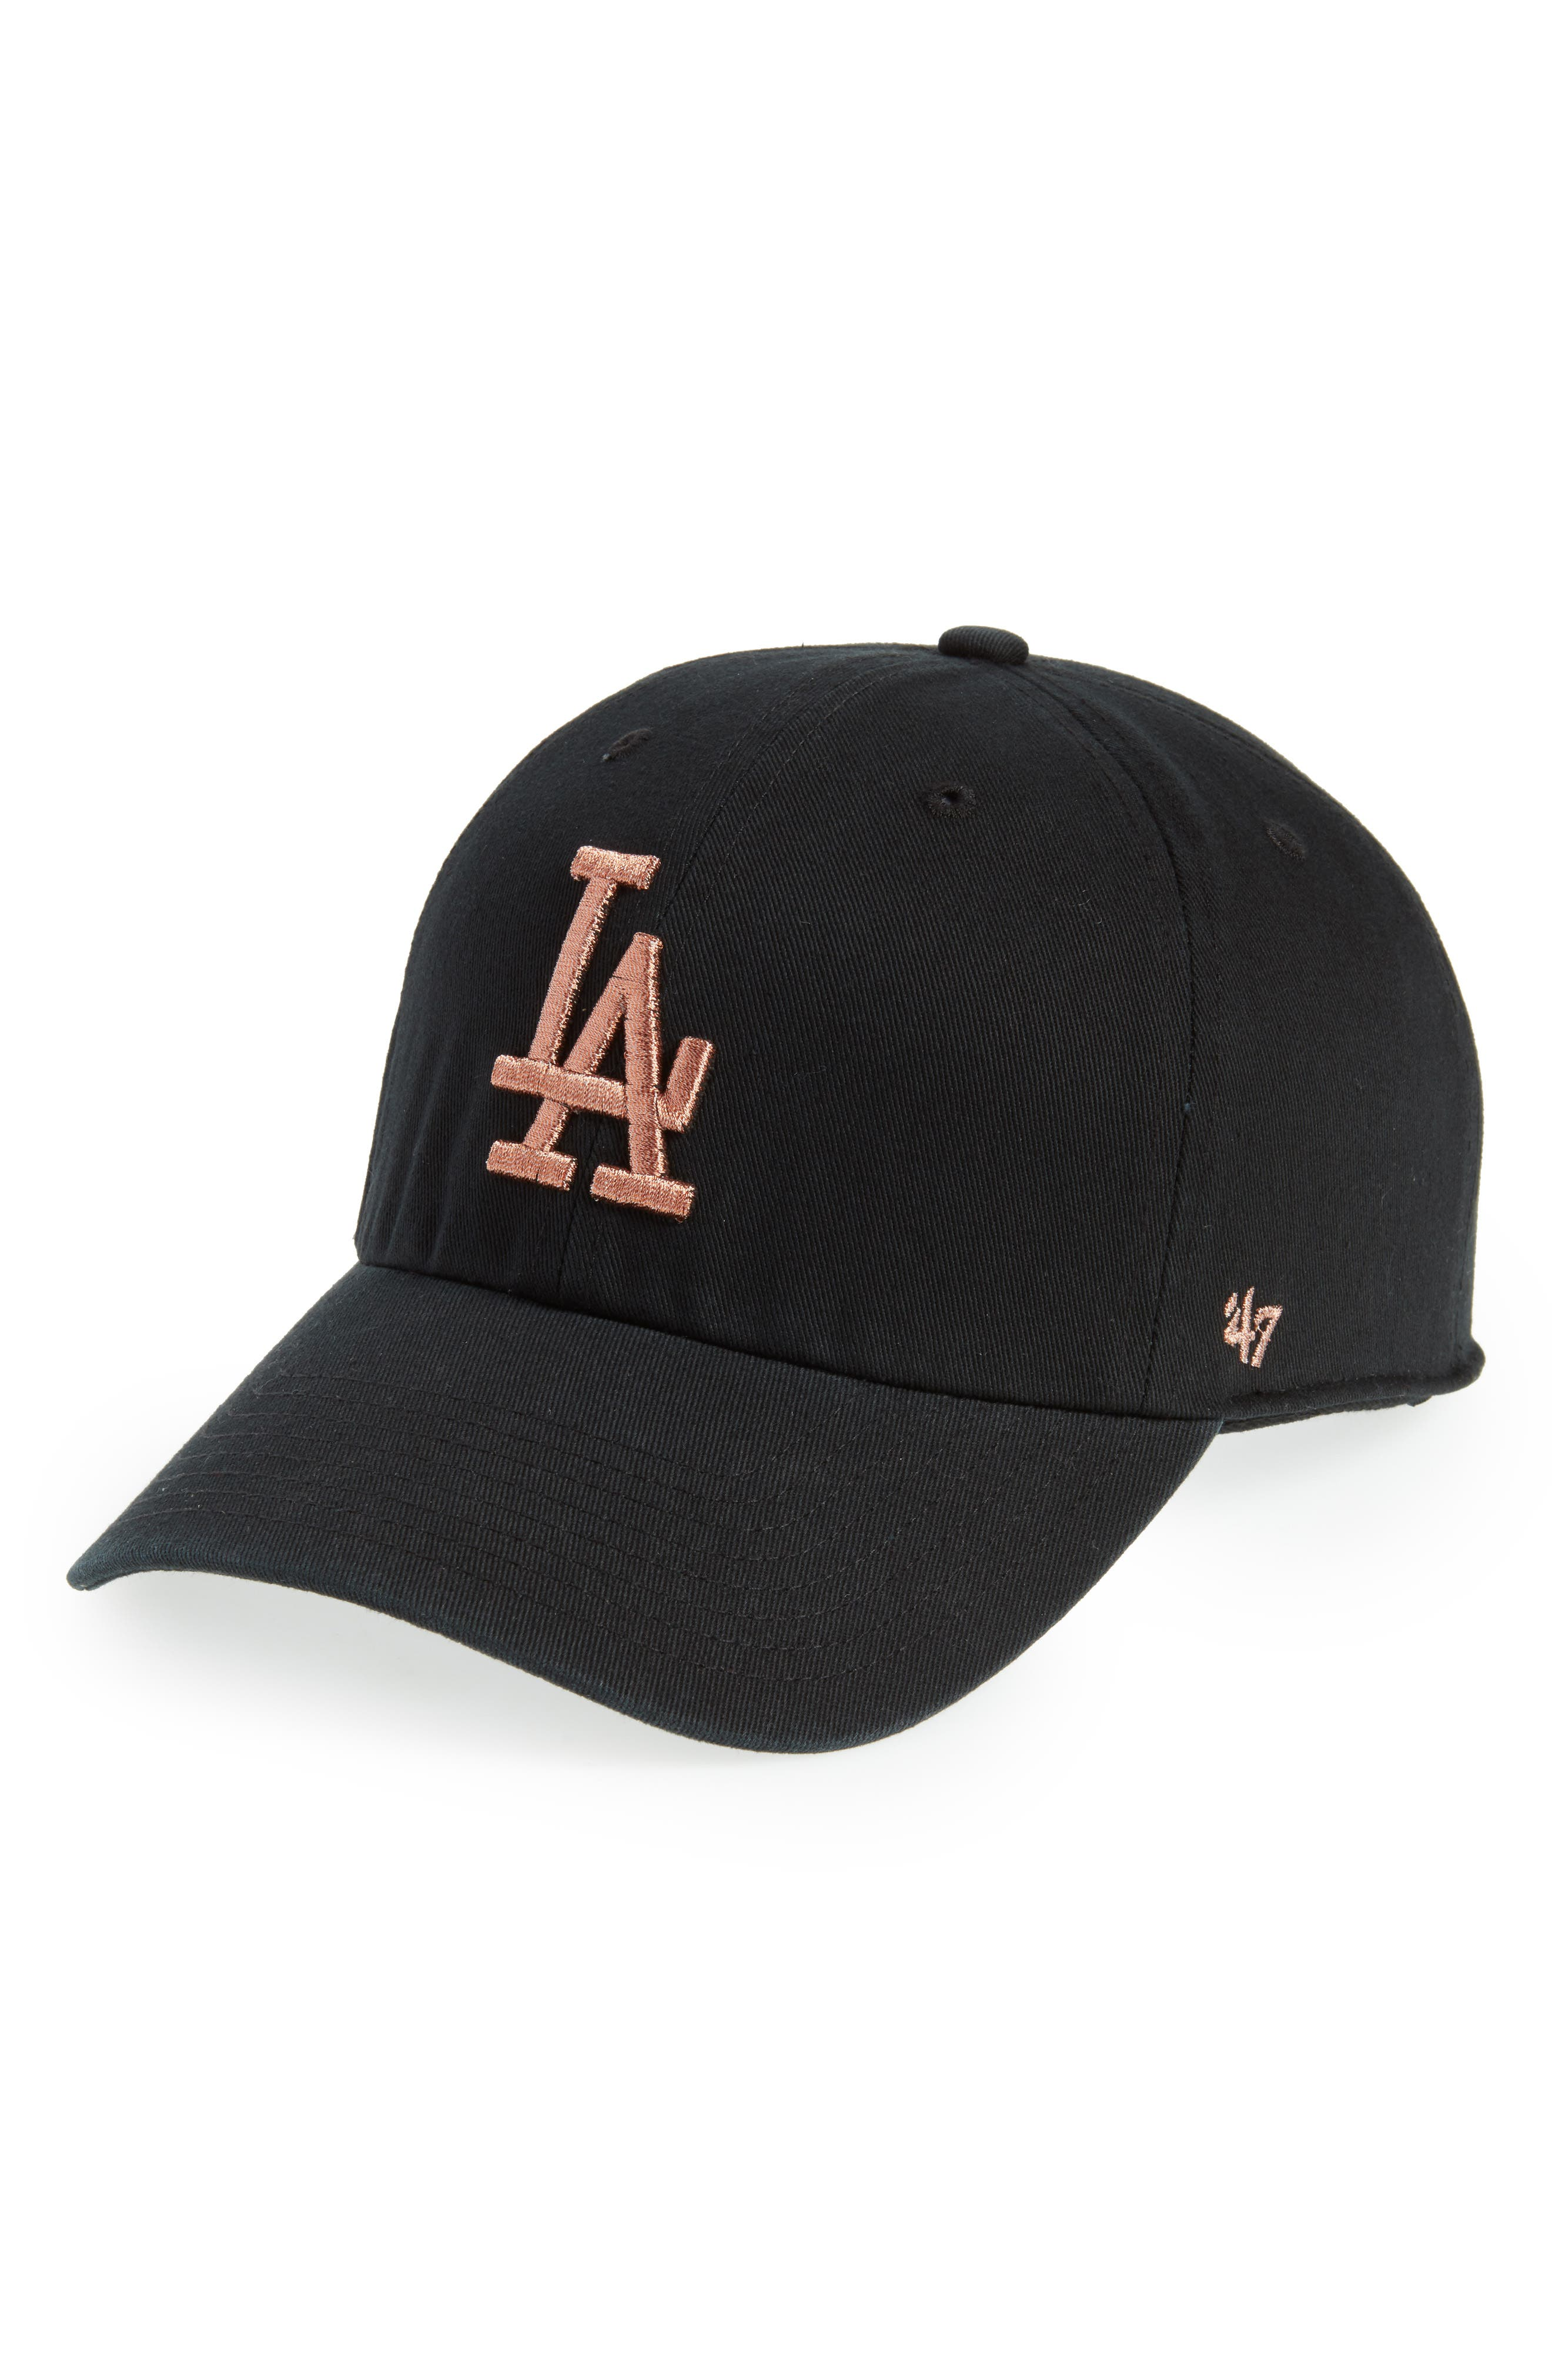 Los Angeles Dodgers Metallic Embroidery Cap,                             Main thumbnail 1, color,                             Black